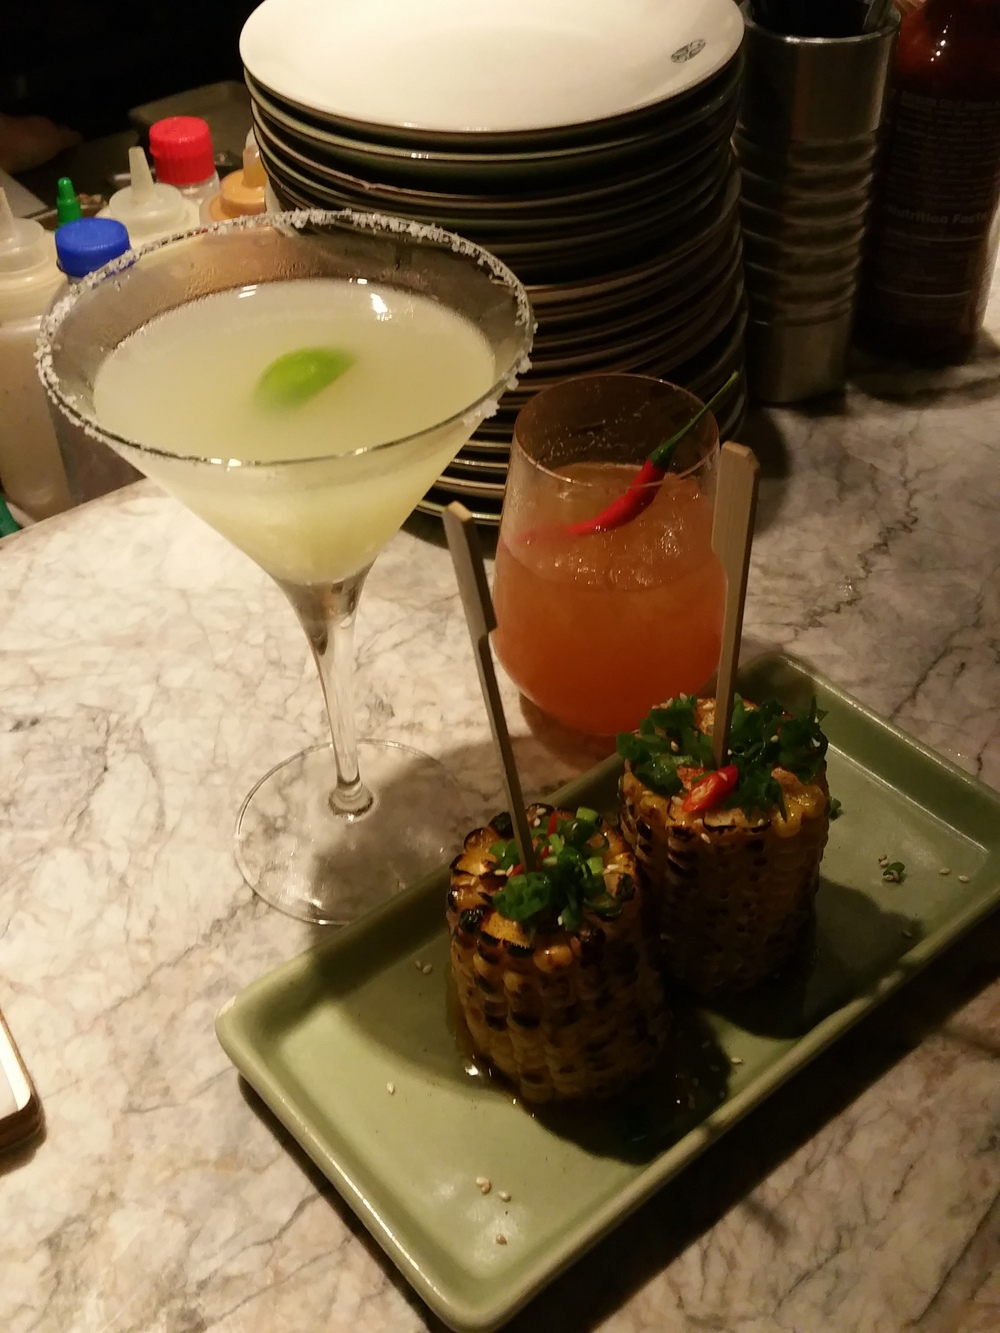 I got the Kaffir Lime Margarita, Grace got the Srirachelada, and we split the corn. Yum.